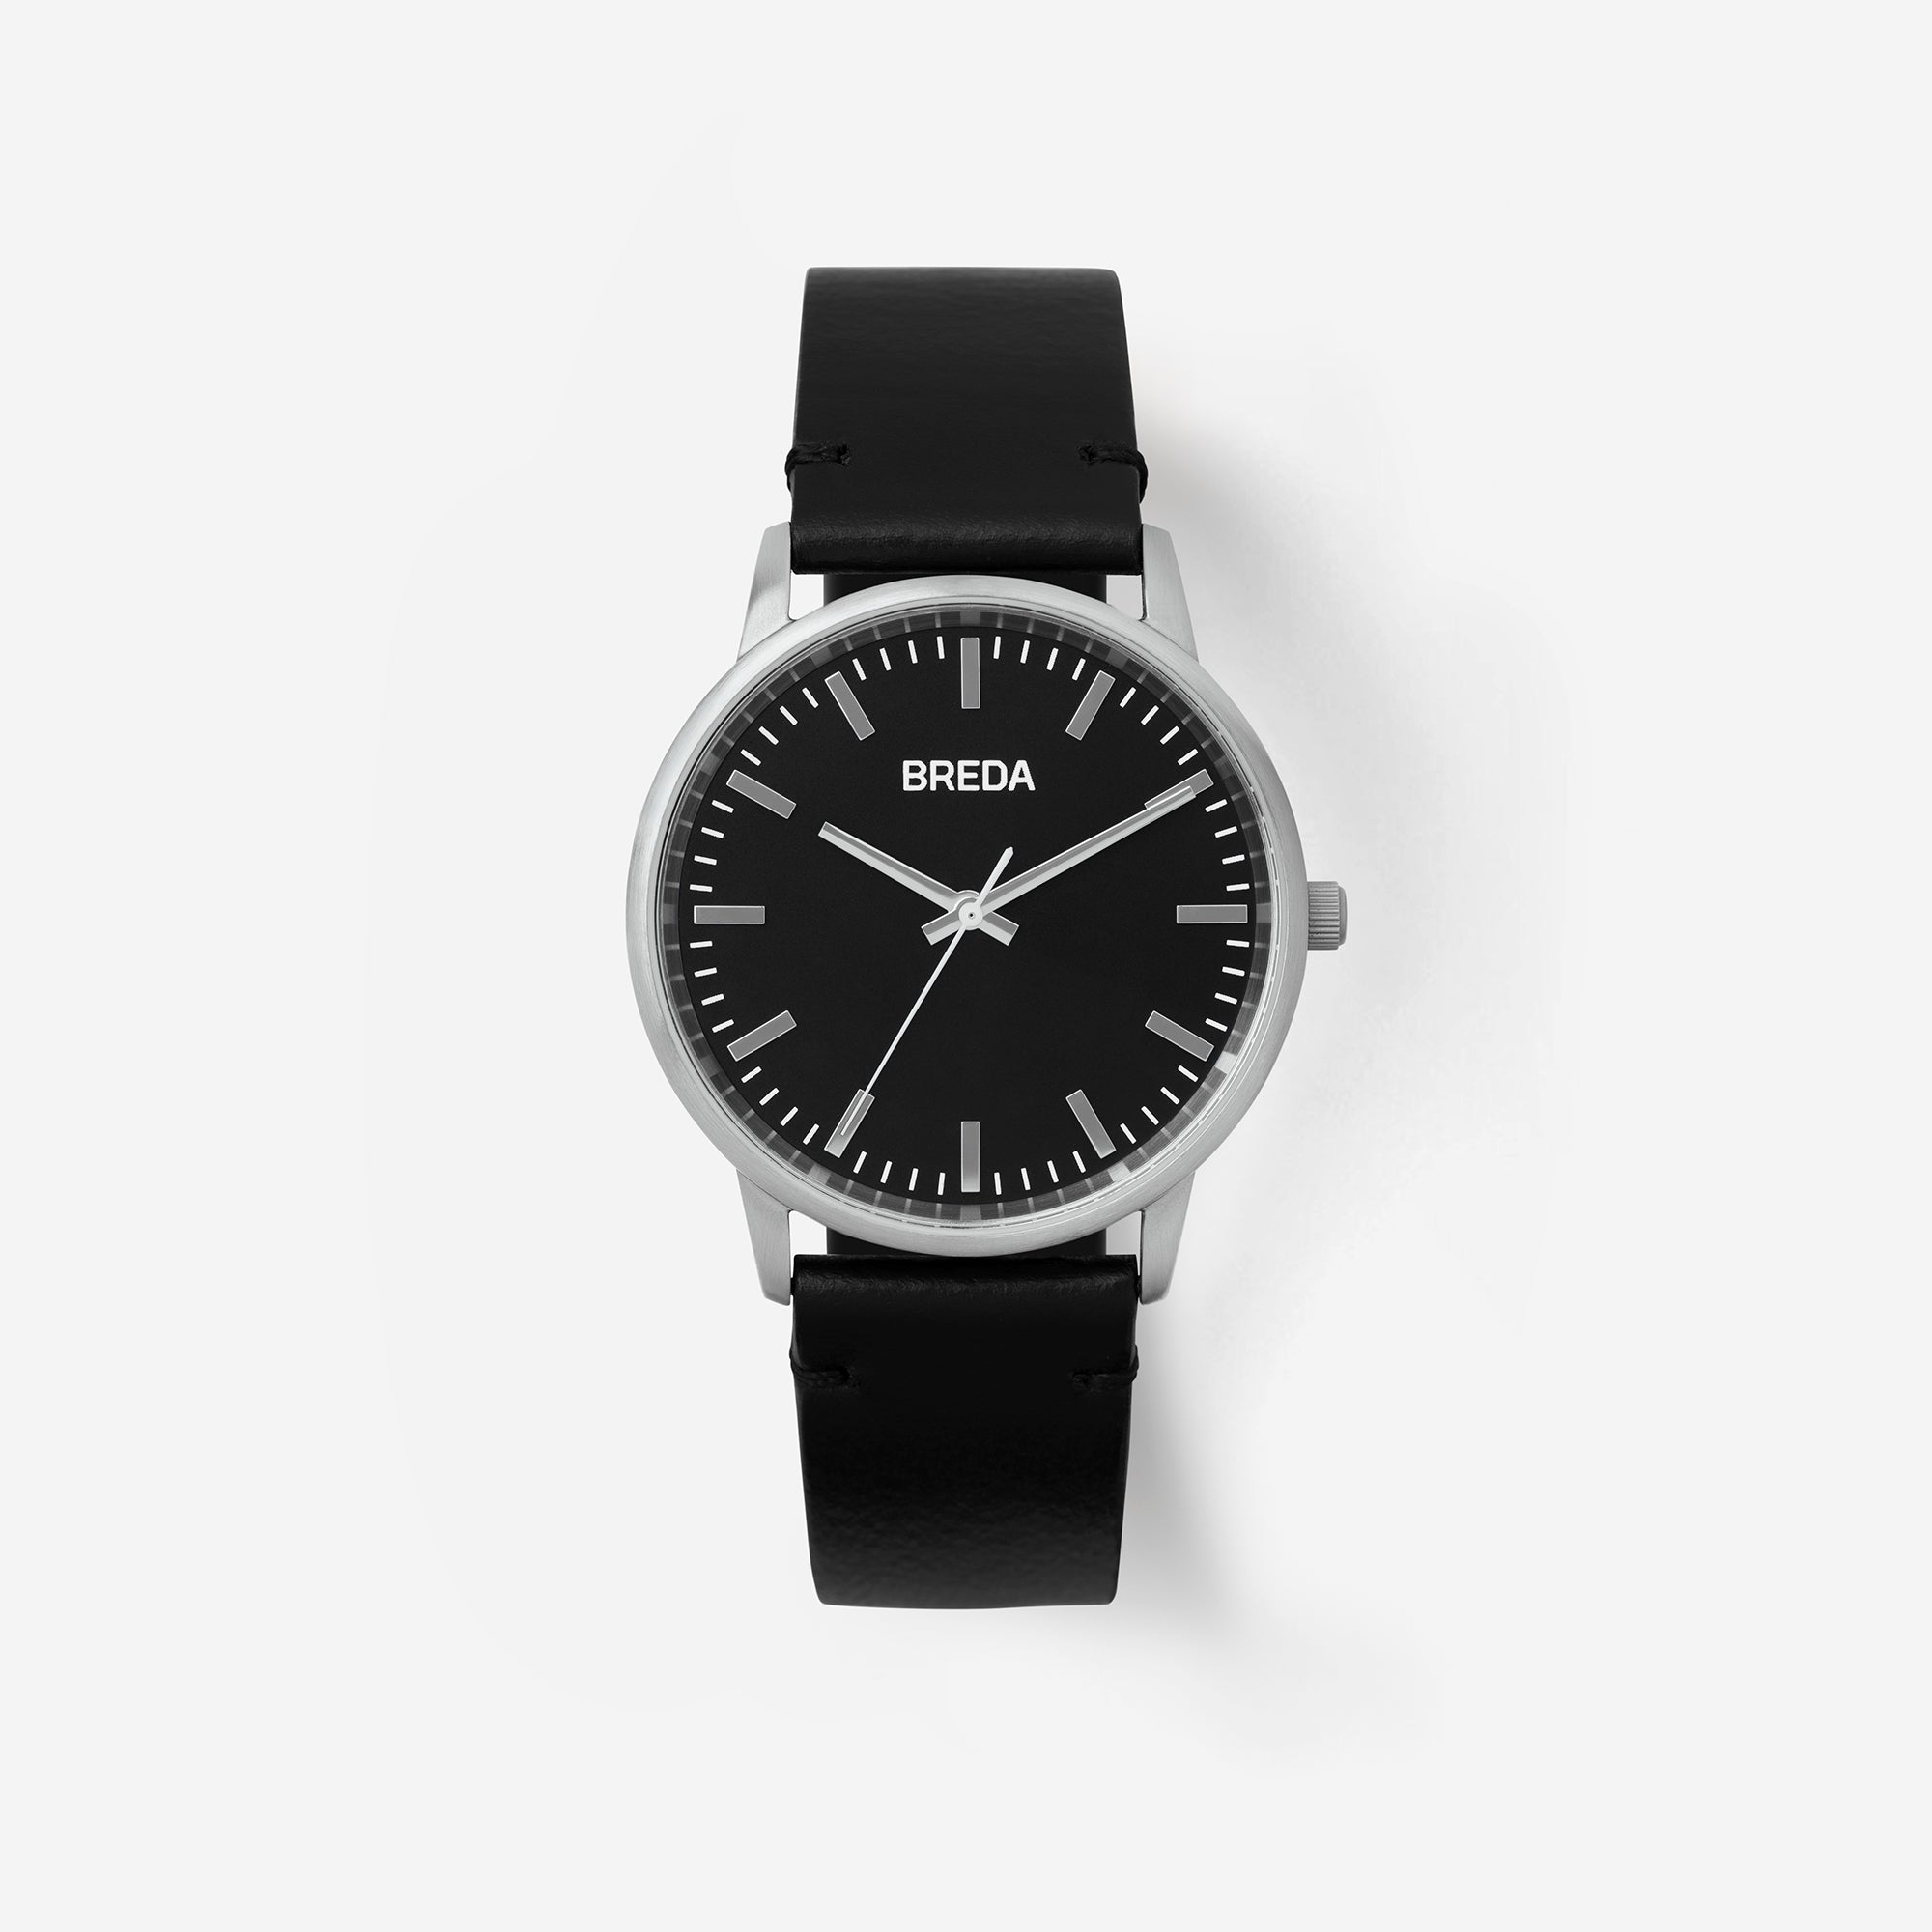 //cdn.shopify.com/s/files/1/0879/6650/products/breda-zapf-1697k-silver-black-leather-watch-front_1024x1024.jpg?v=1522793707